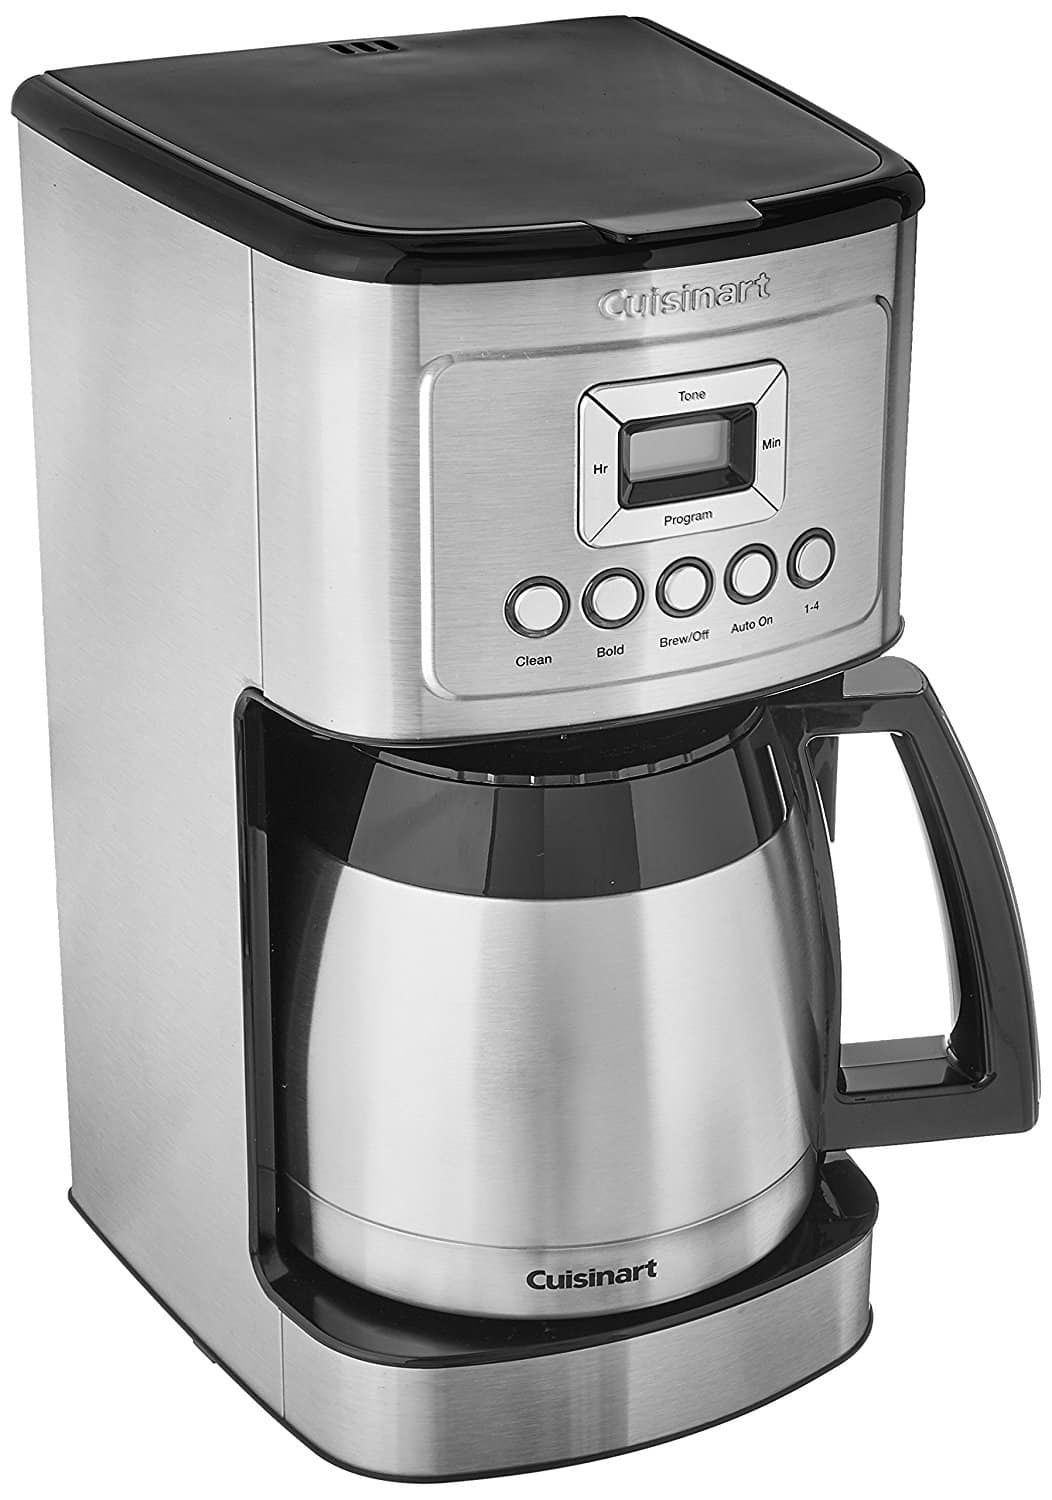 Top 10 Best Cuisinart Coffee Makers in 2020 Buyer's